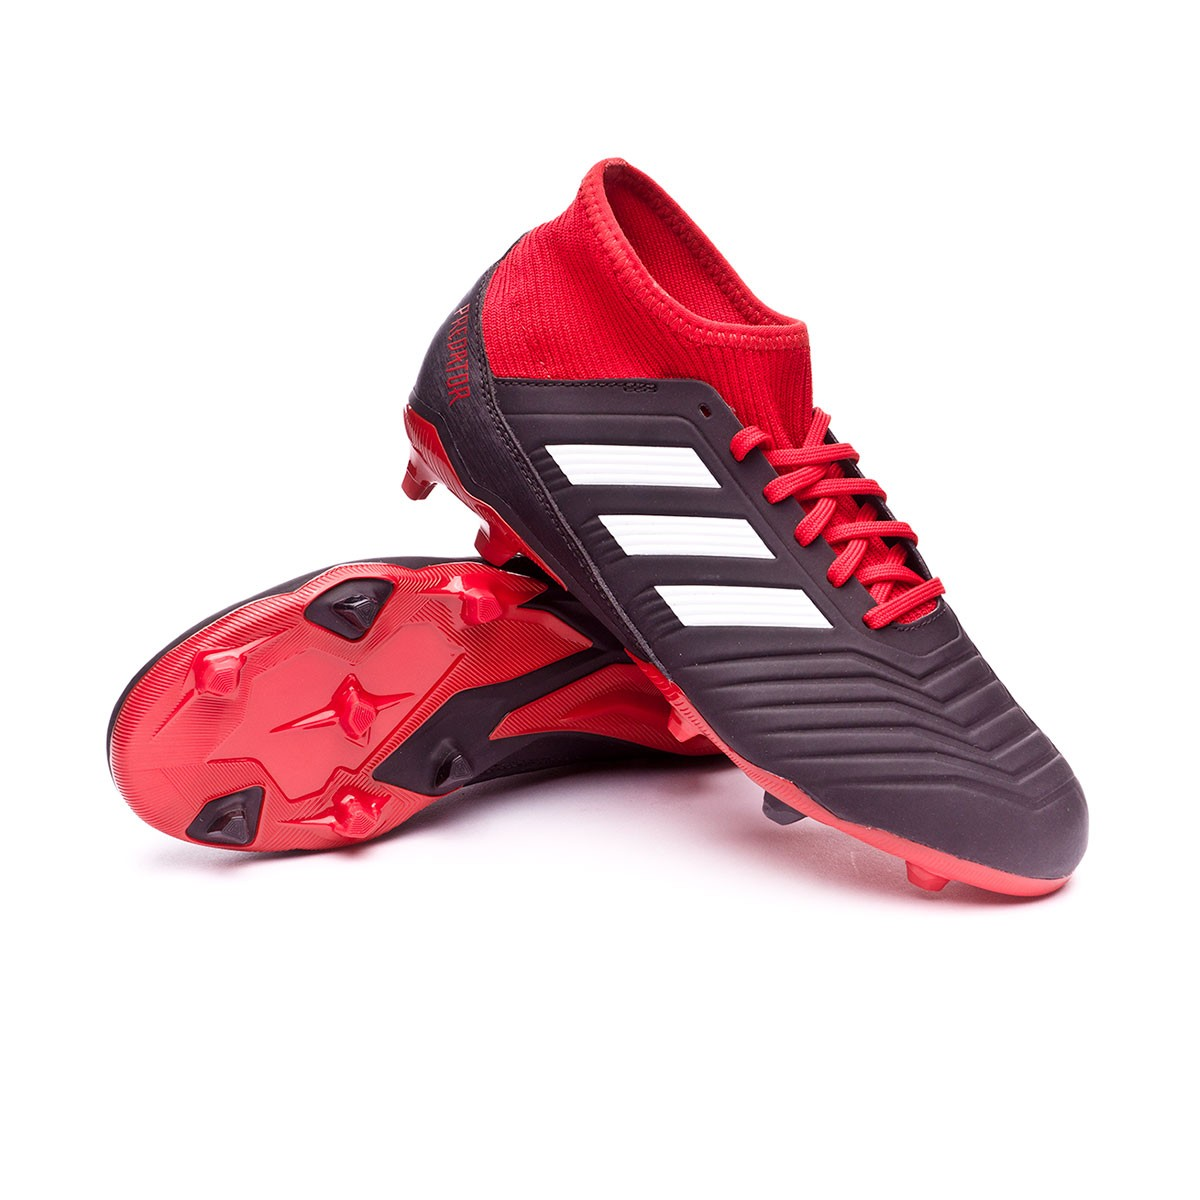 ac15666e9ec2 Football Boots adidas Kids Predator 18.3 FG Core black-White-Red ...